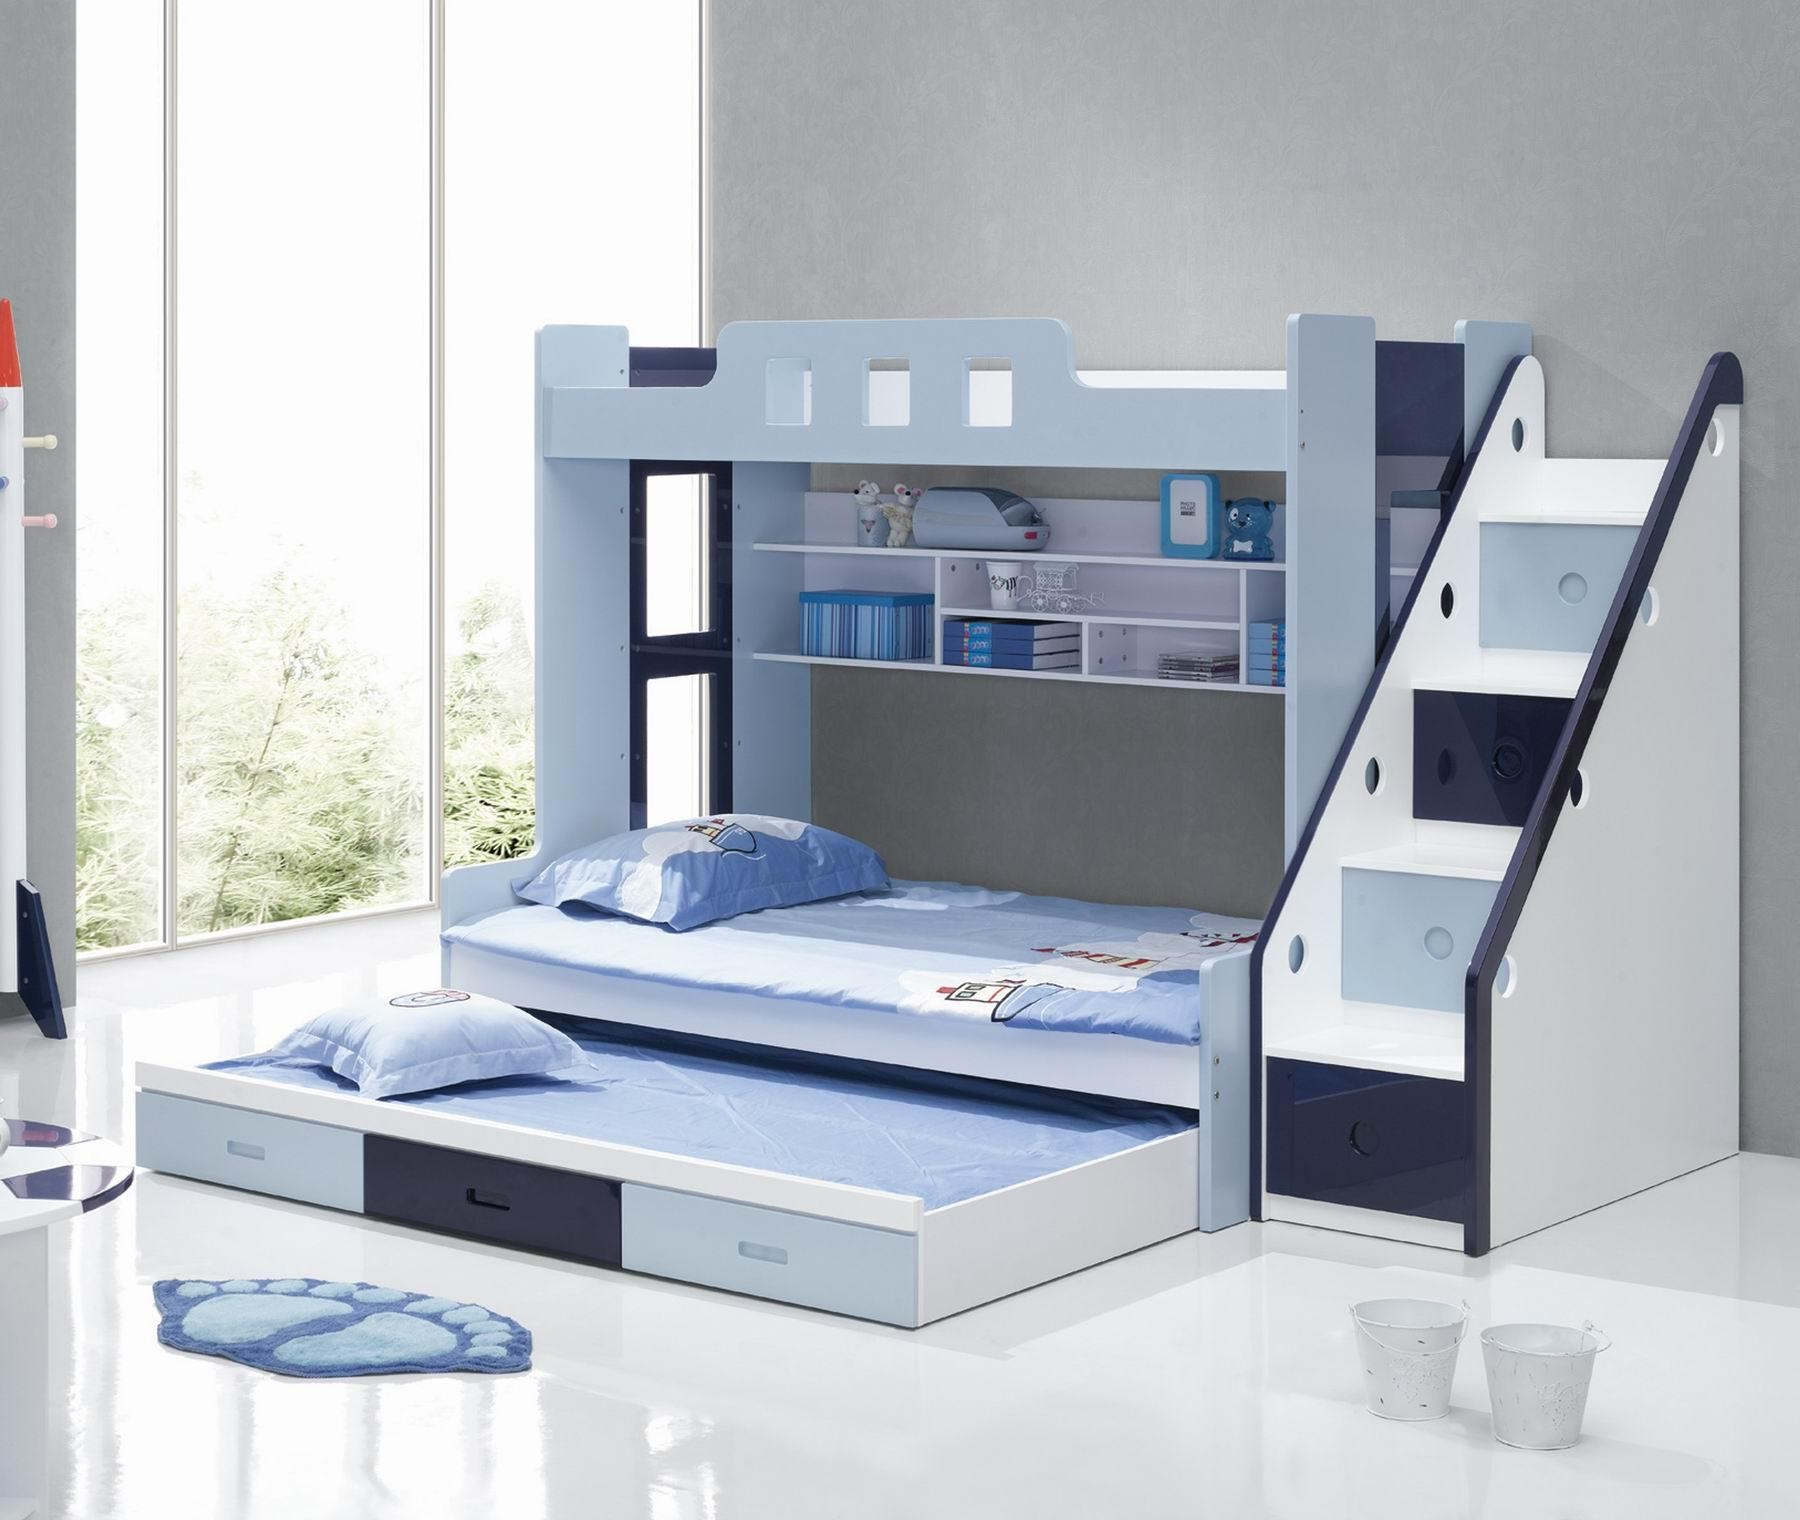 25 Diy Bunk Beds With Plans | Guide Patterns with Bunk Bed With Sofas Underneath